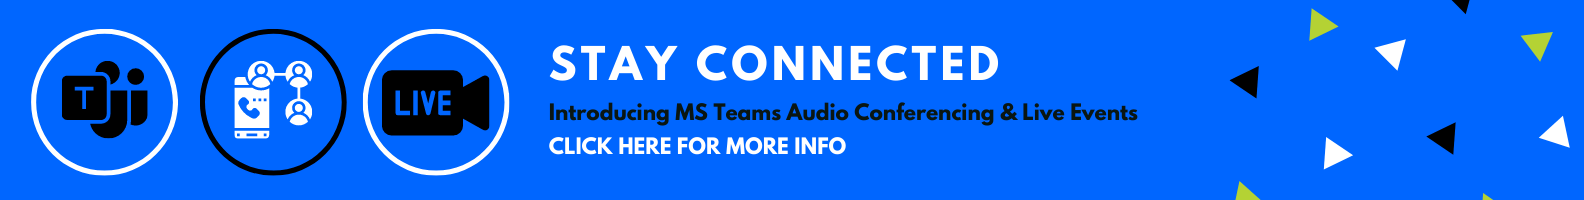 MS Teams Audio Conferencing and Live Events